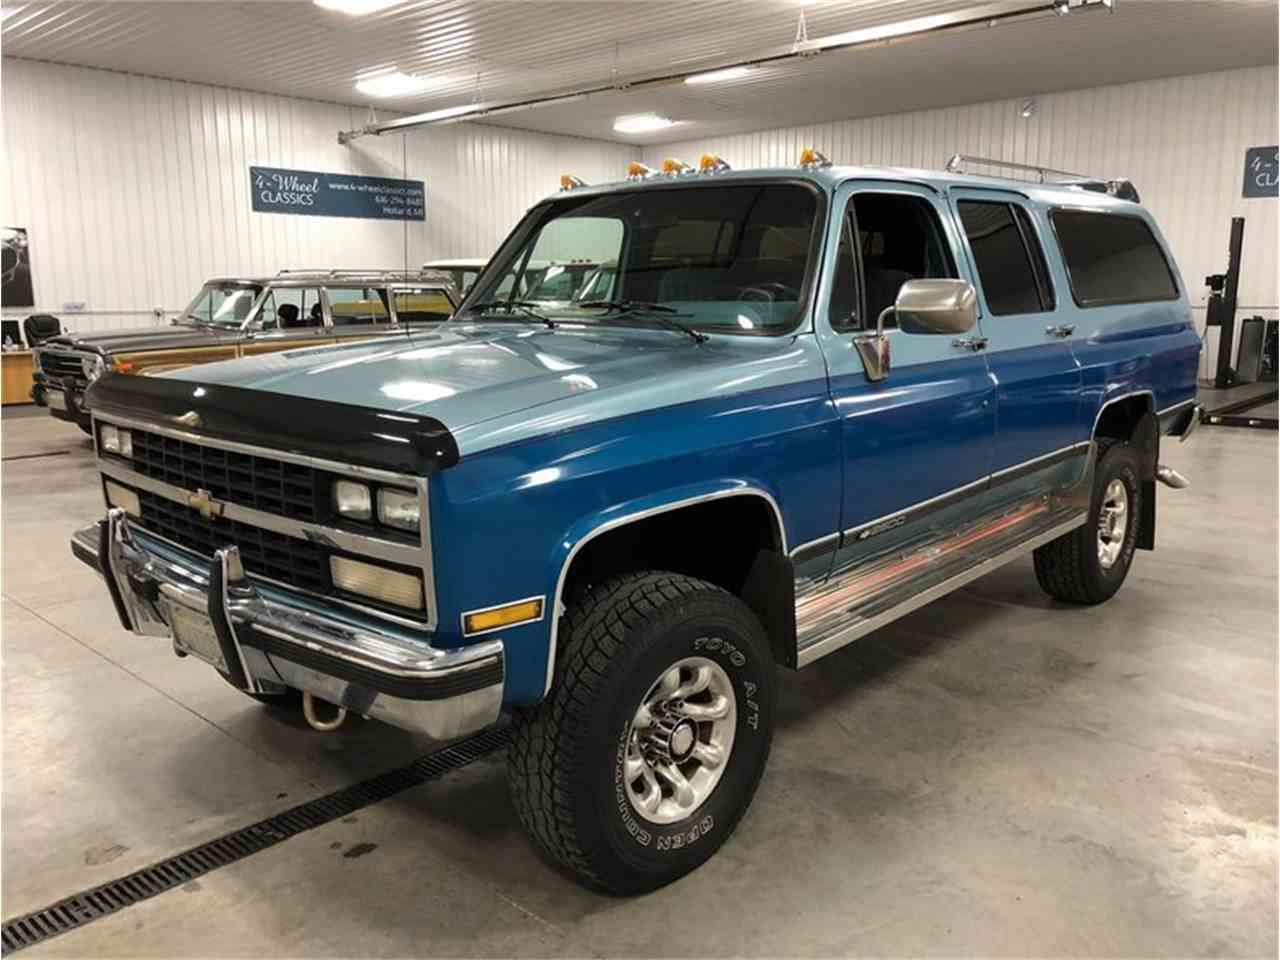 Large Picture of '89 Chevrolet Suburban - $14,900.00 - MDKX